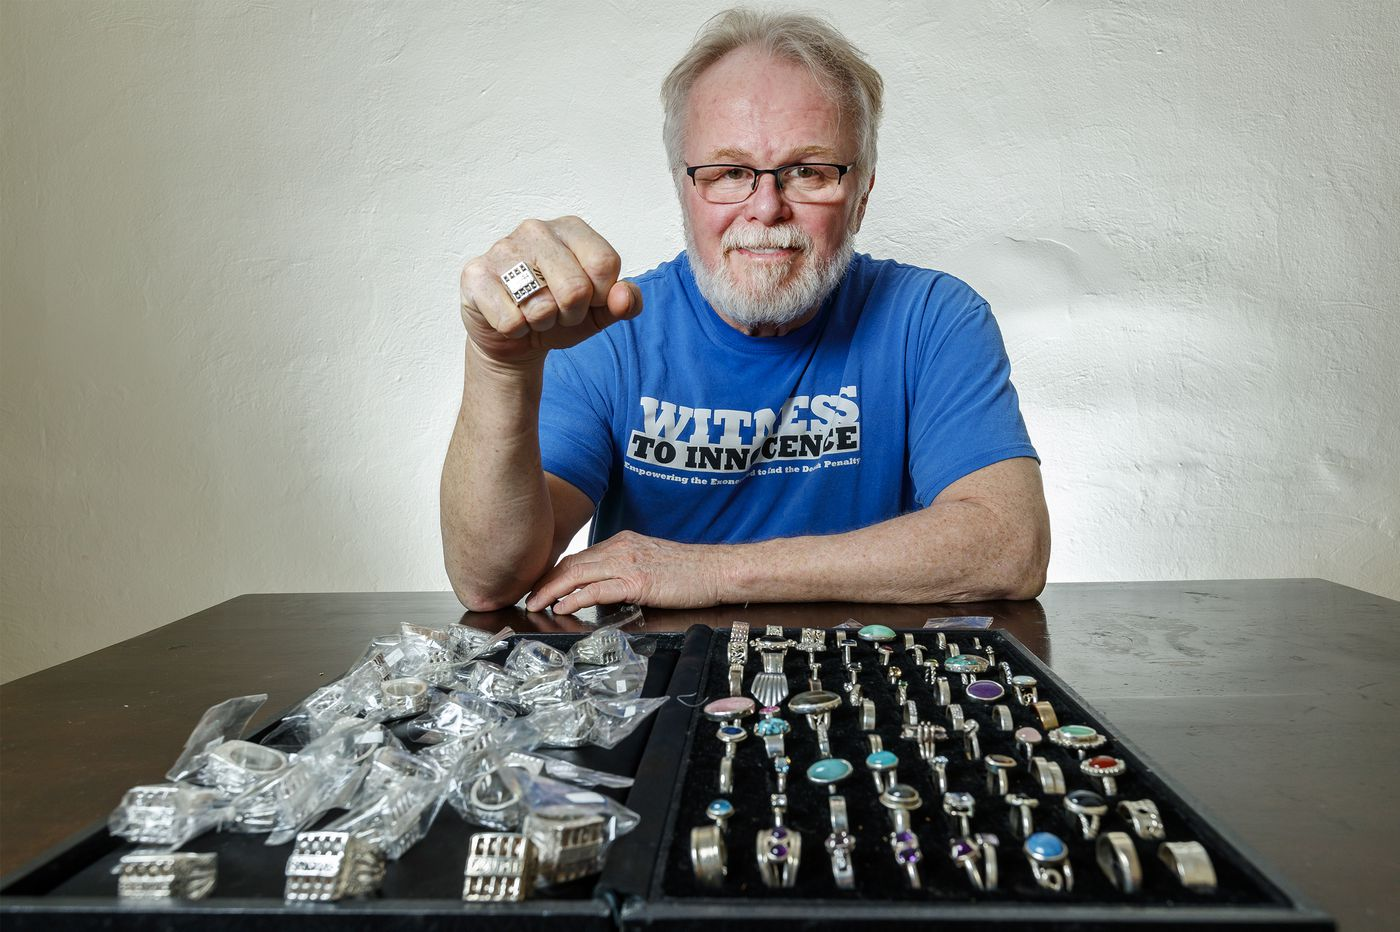 This former death row inmate now makes jewelry out of his home in the Philly suburbs for other exonerees